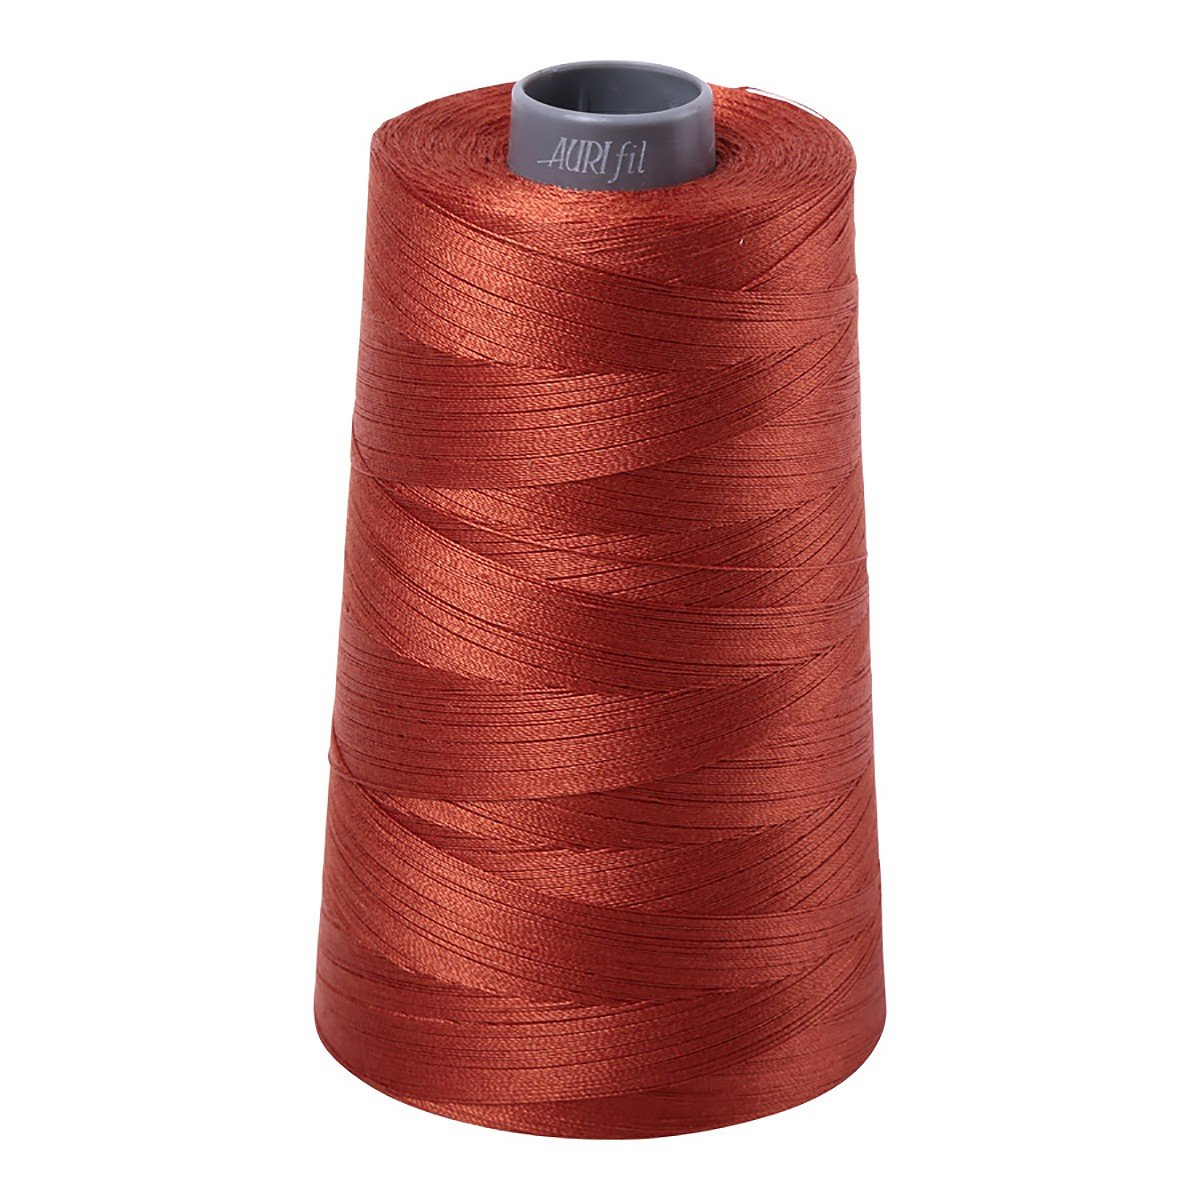 Mako (Cotton) Embroidery Thread 28wt 3609yds Copper